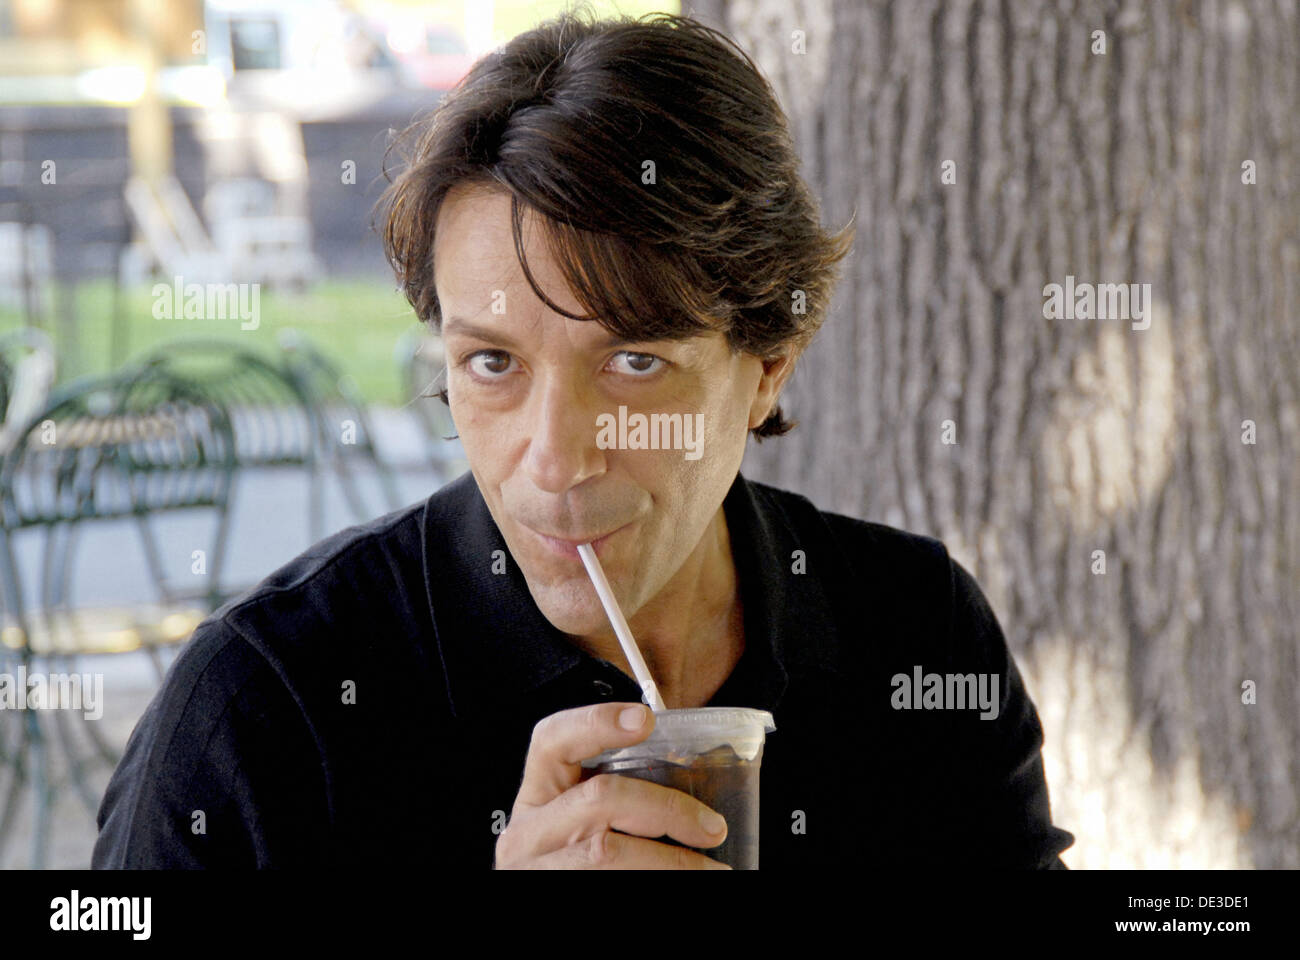 40-45 year old caucasian male, sipping iced coffee, at an outdoor café - Stock Image